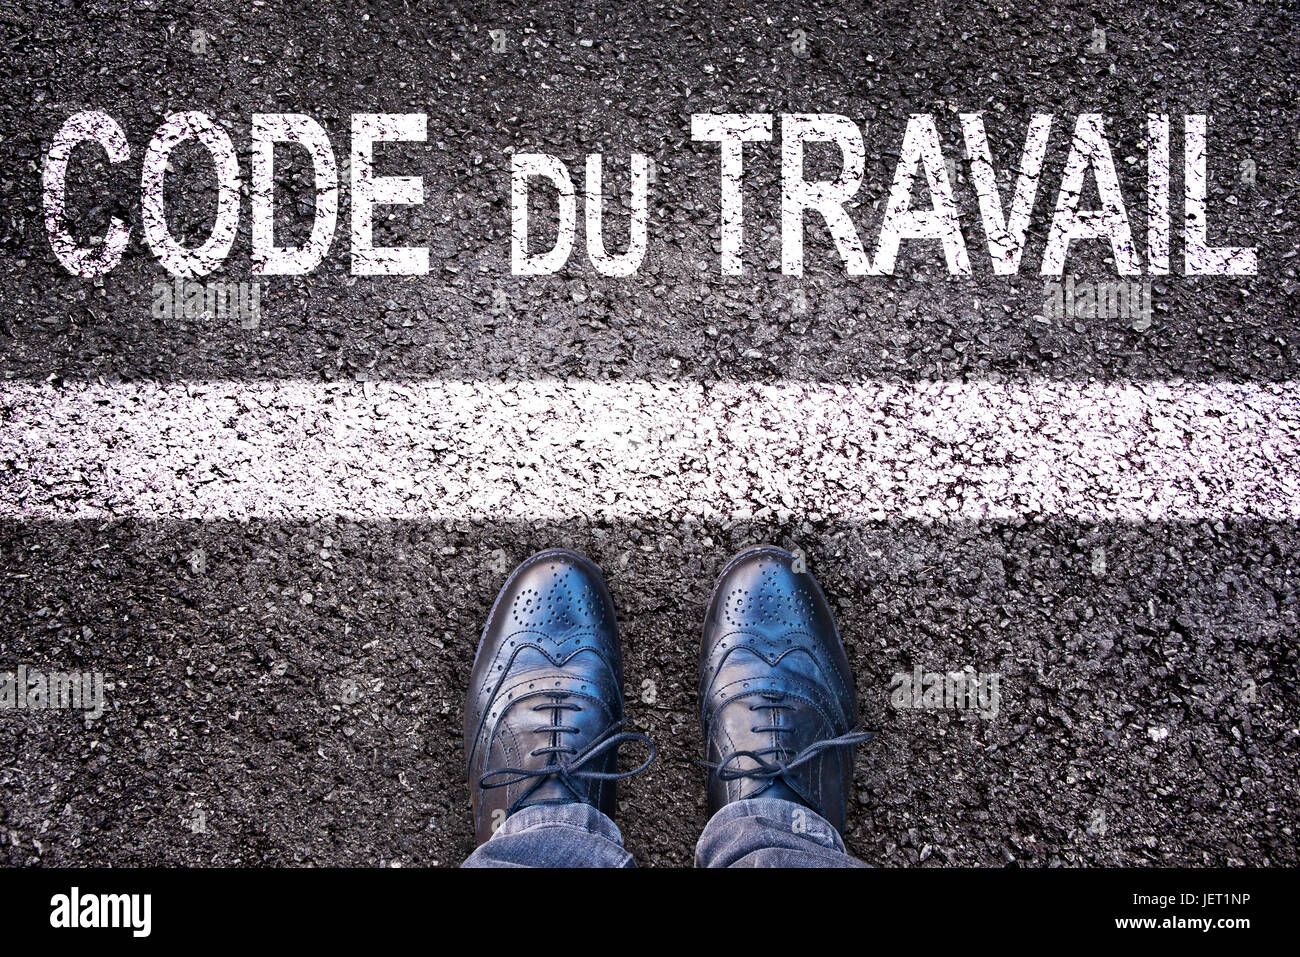 Code du travail (meaning labor code in French) written on an asphalt road background with legs - Stock Image